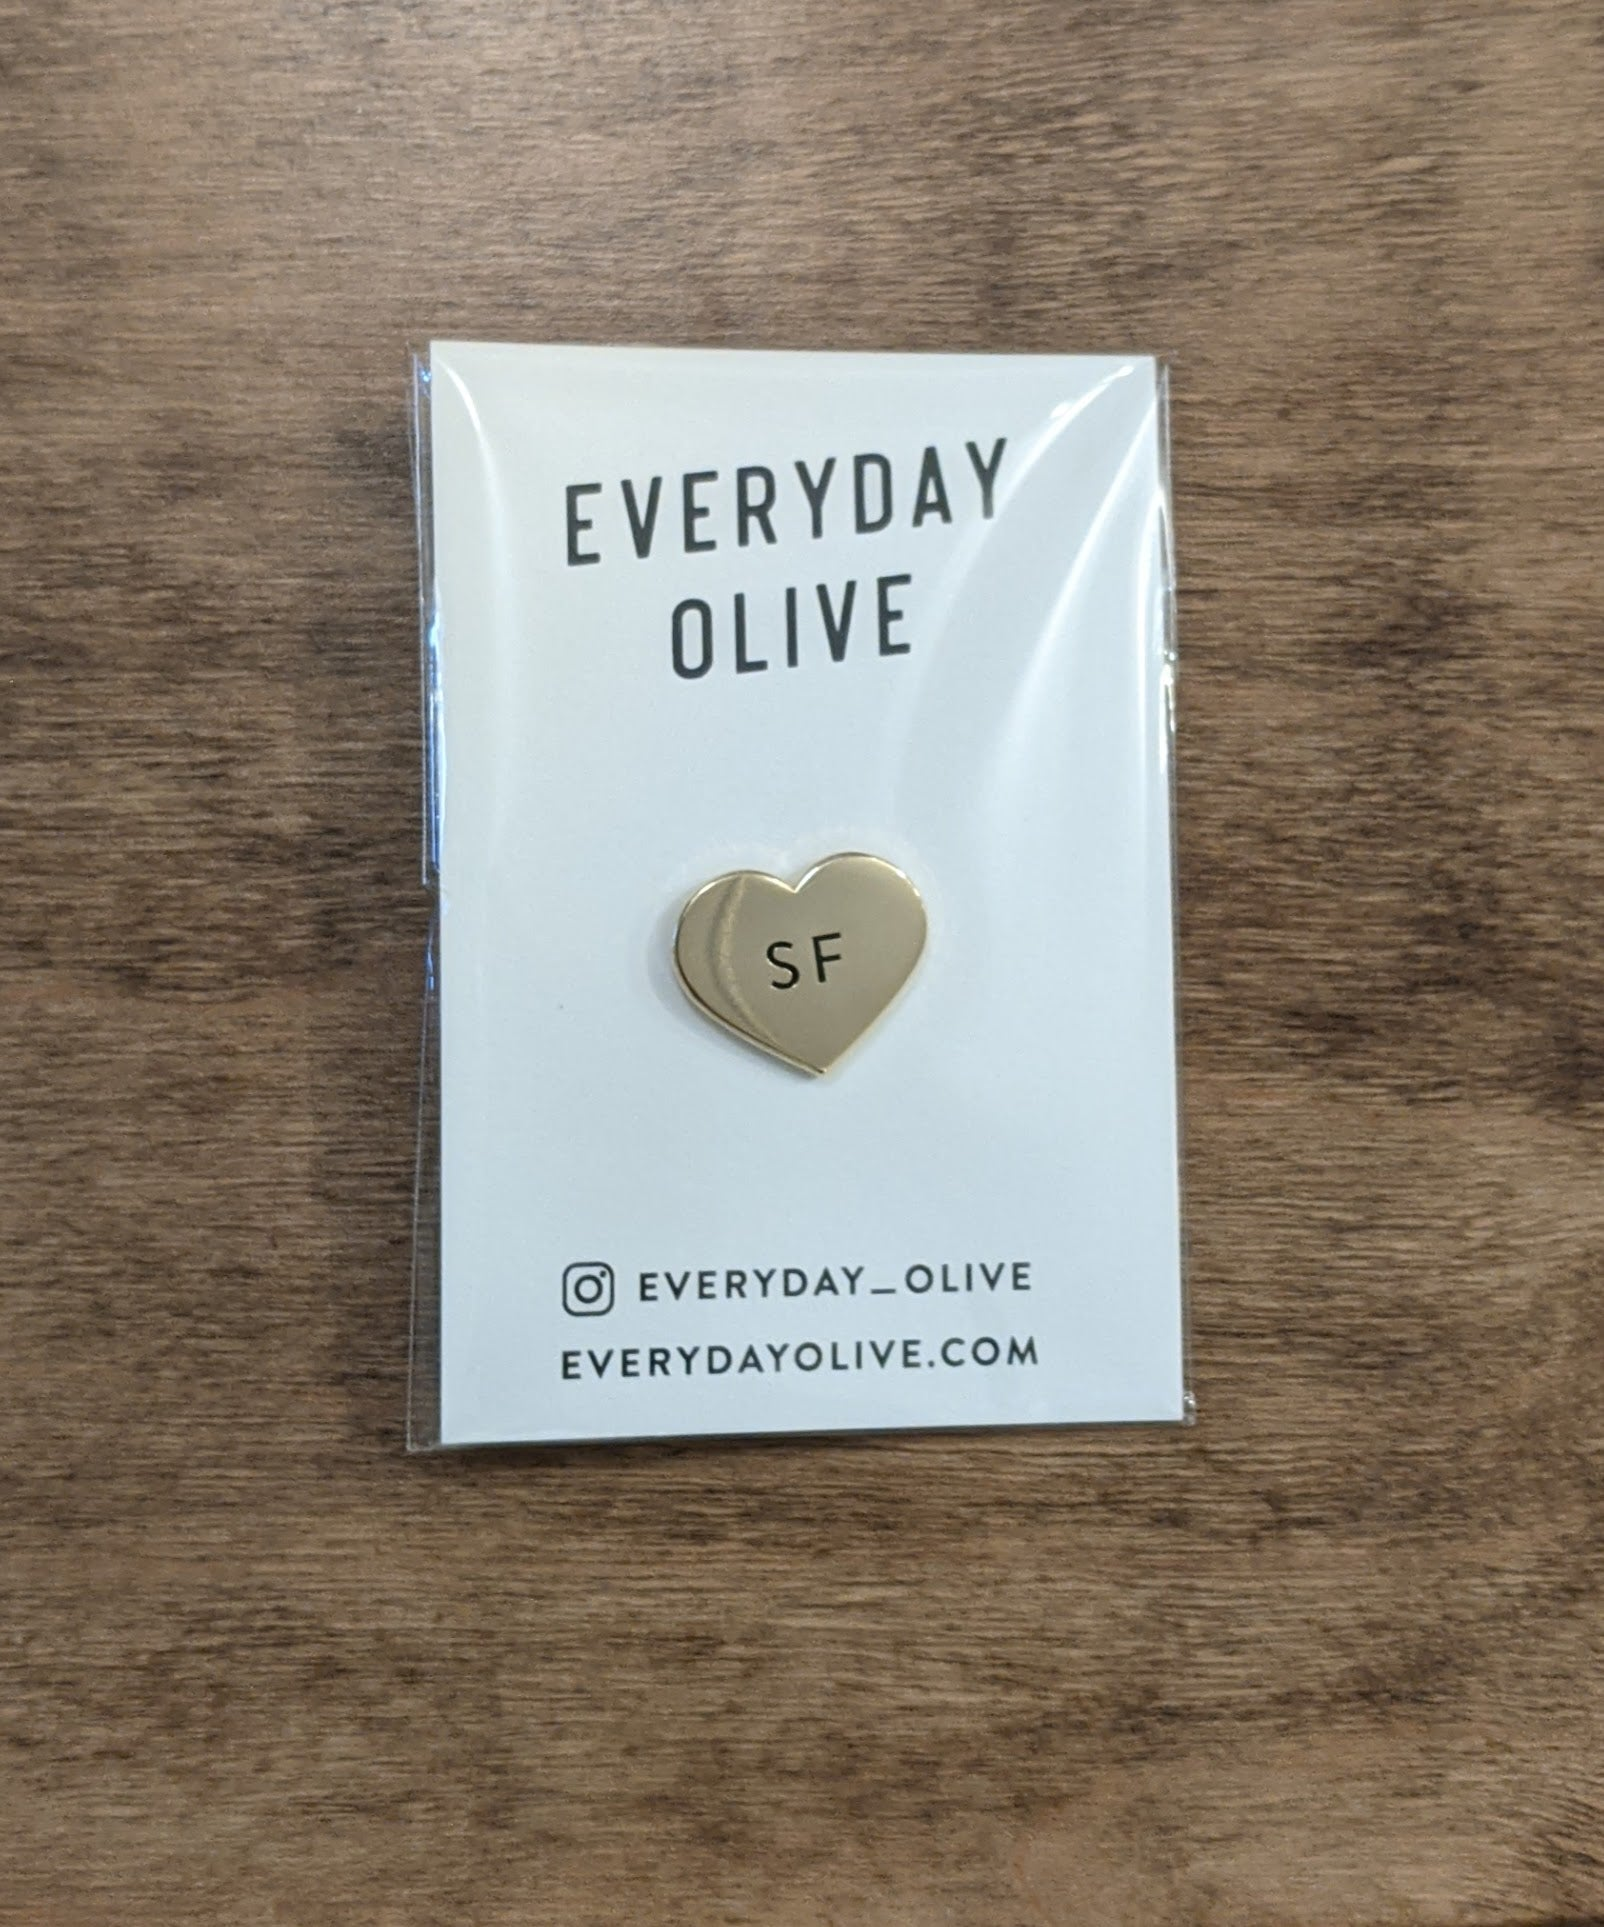 Heart SF gold pin from Everyday Olive